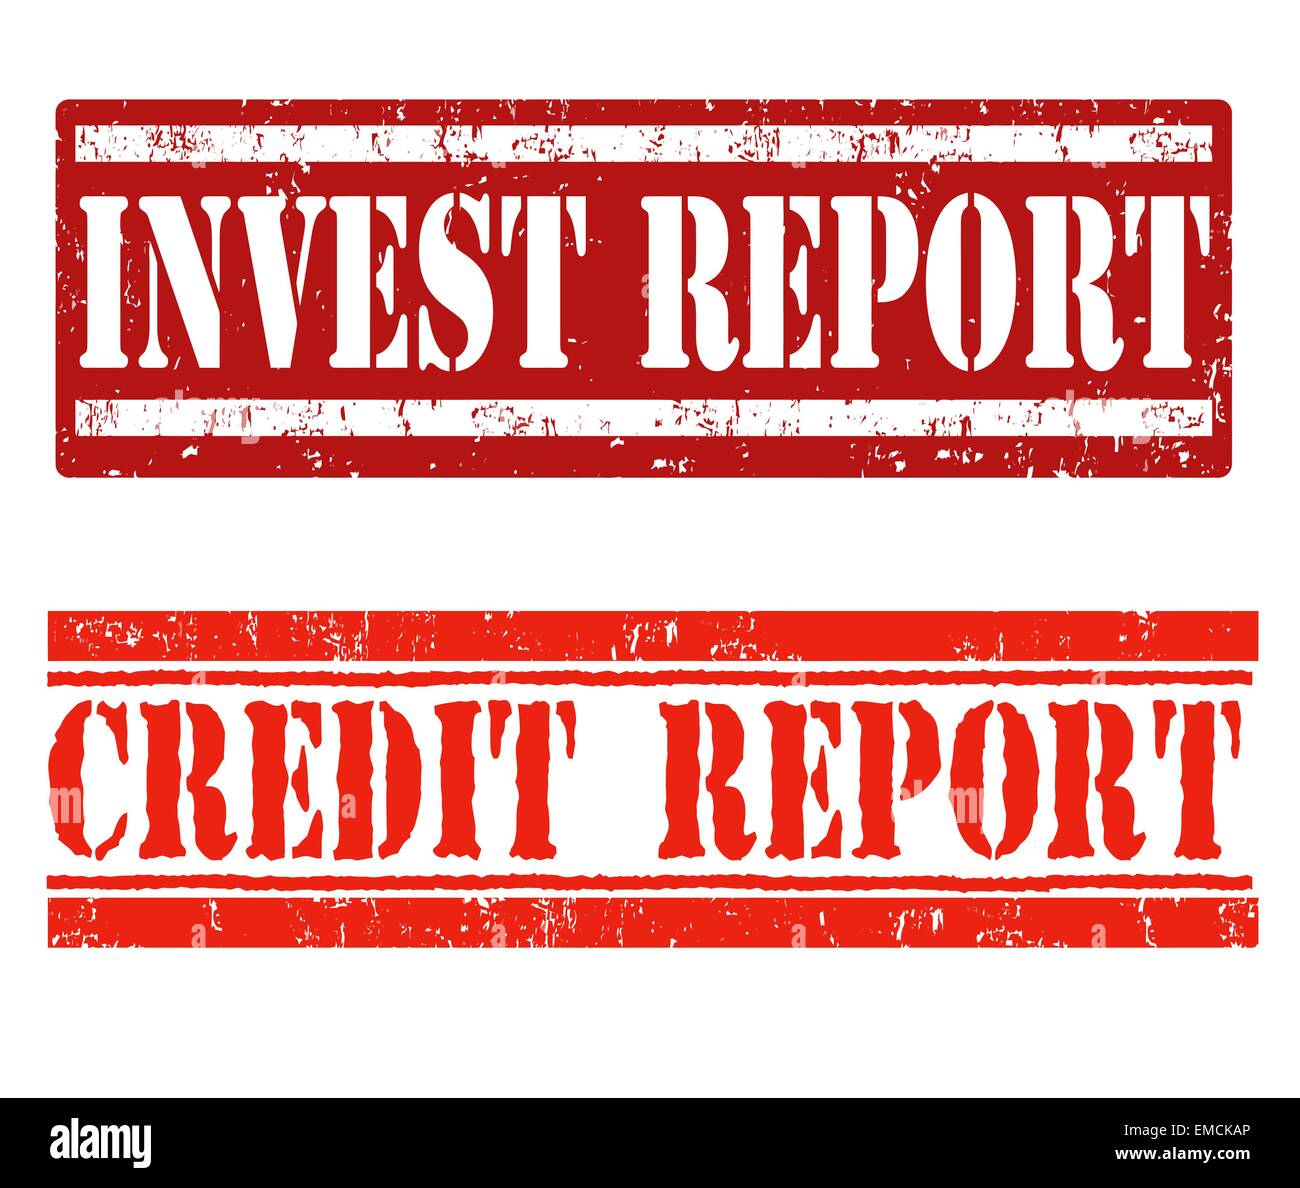 Invest report and credit report stamps - Stock Image